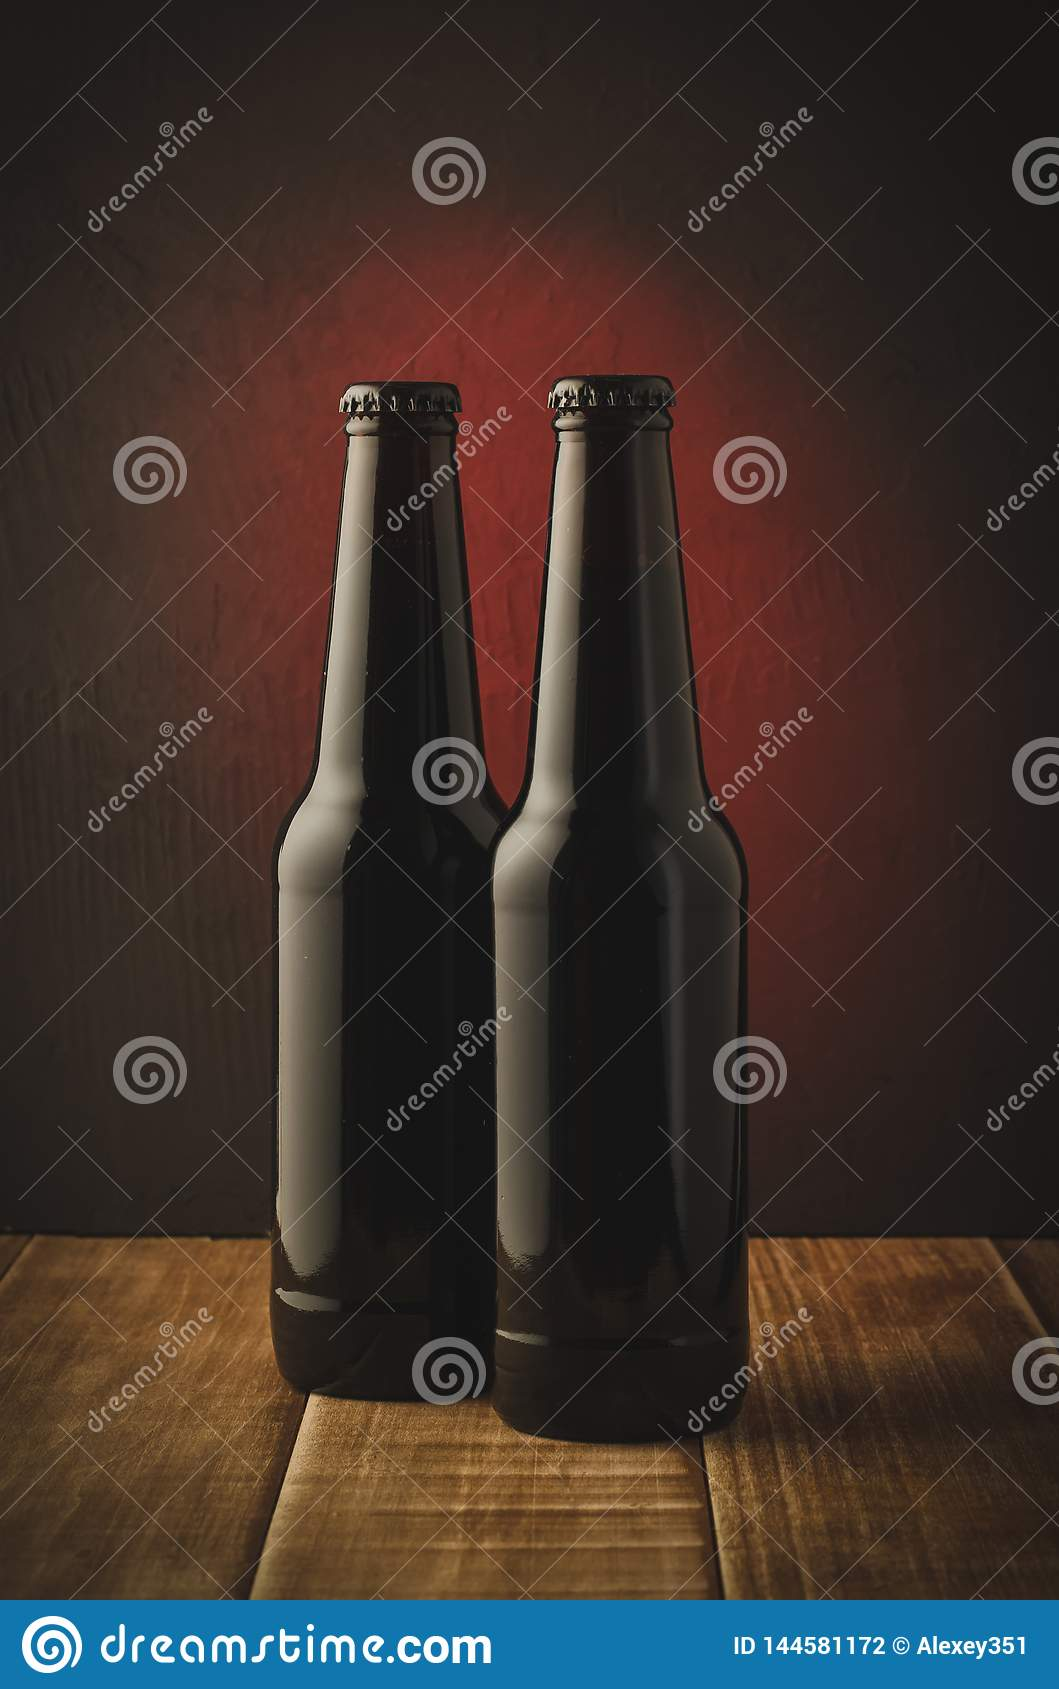 two beer bottles a dark background with red light/two beer bottles a dark background with red light. Selective focus